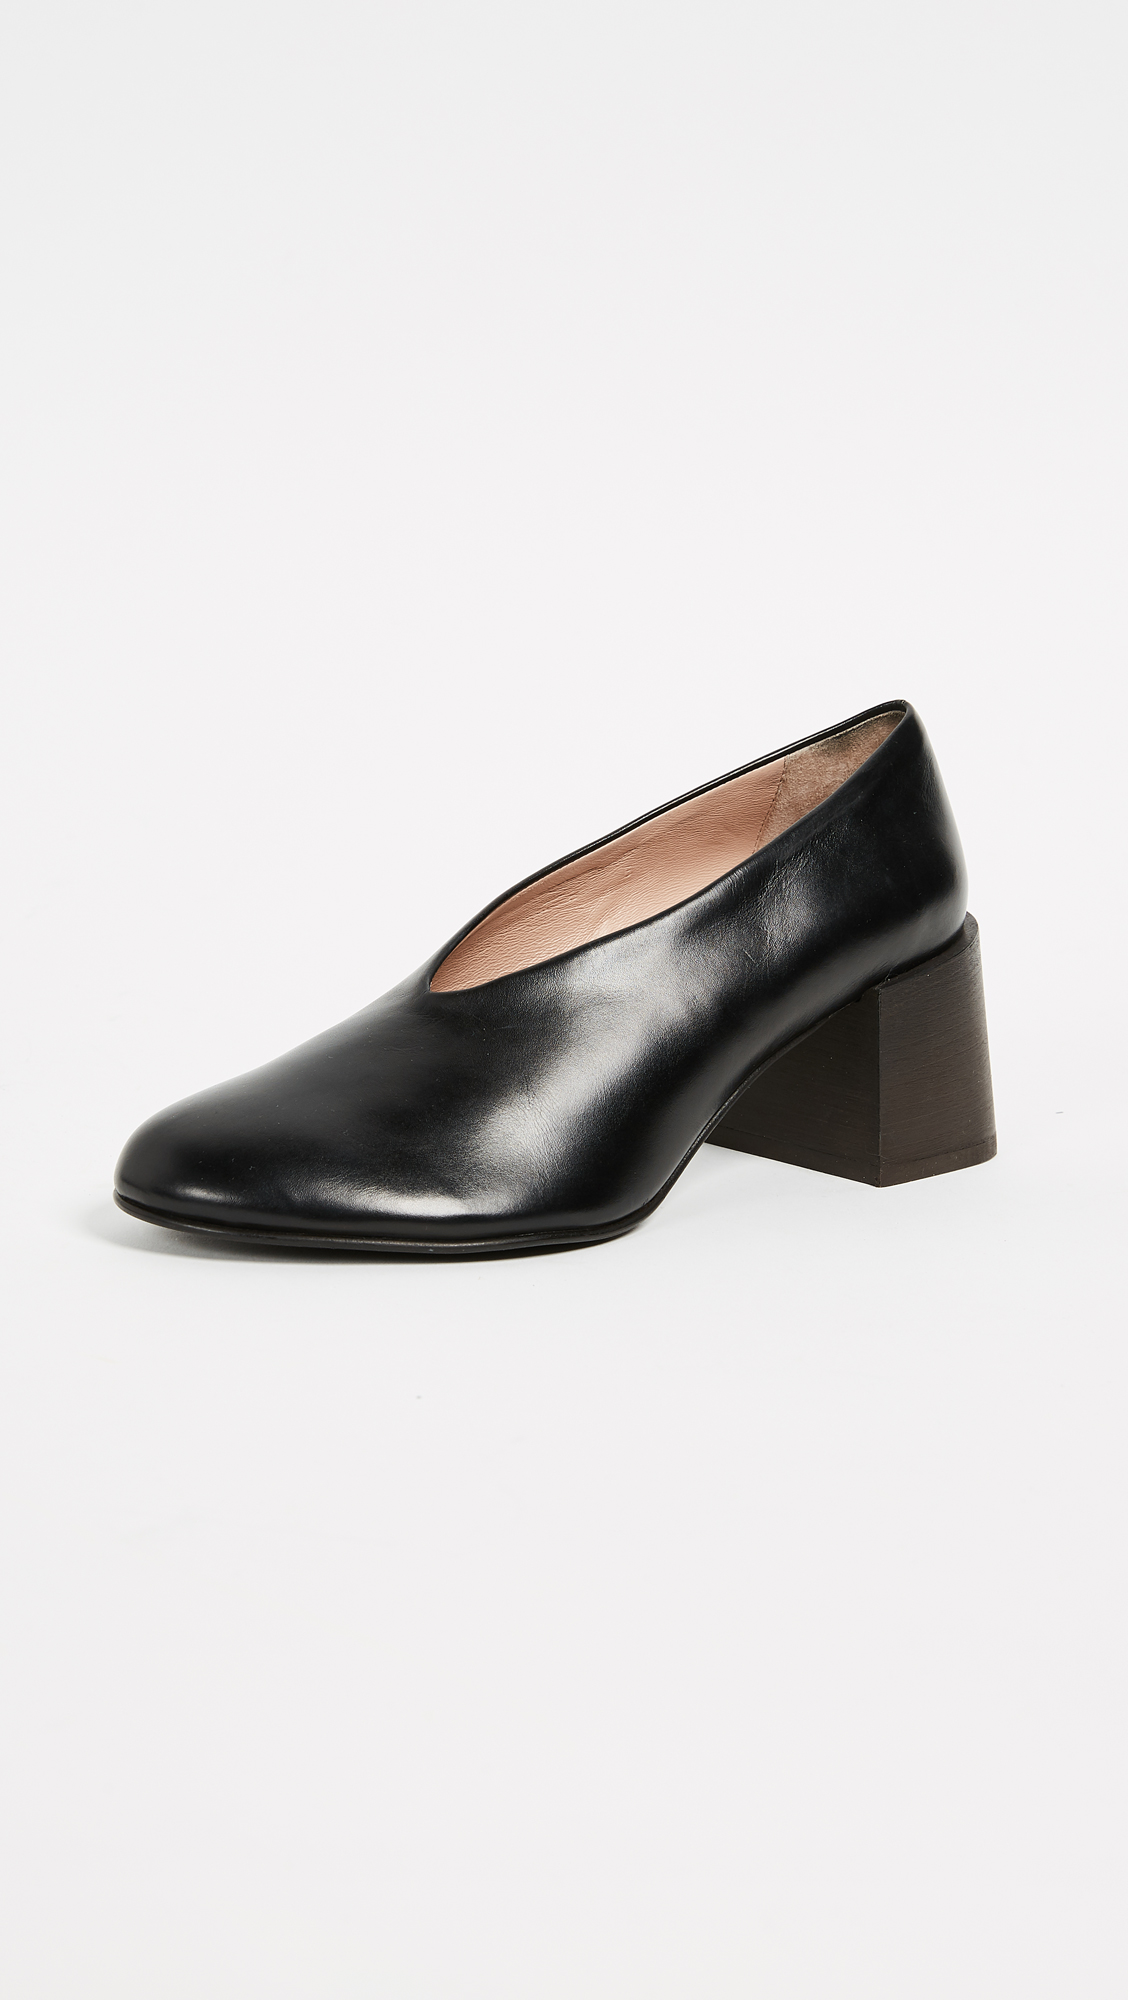 Acne Studios. Sully Pumps